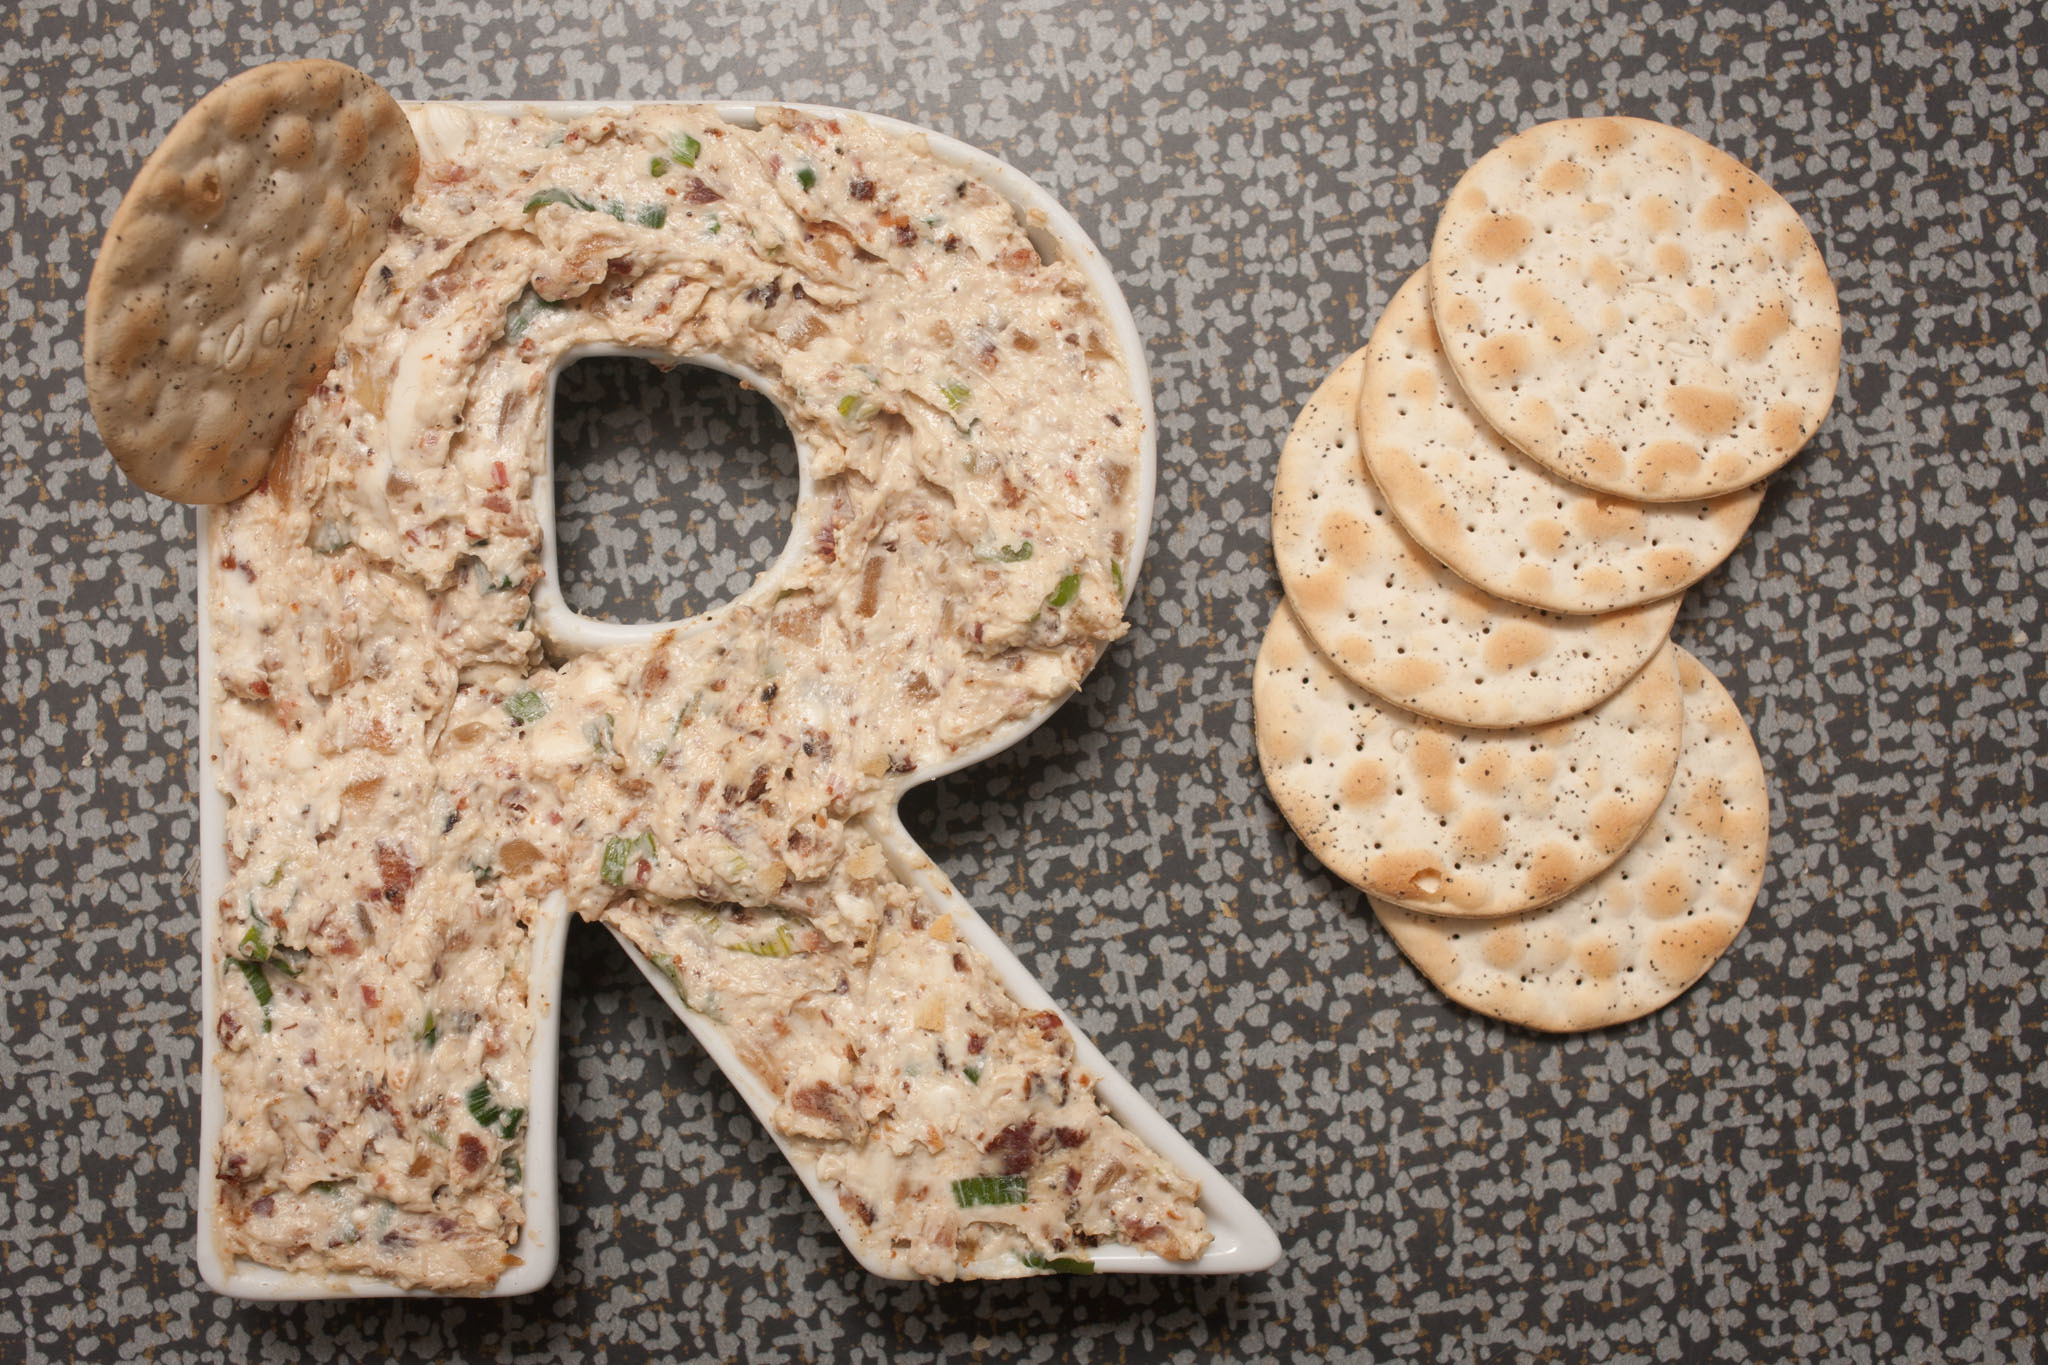 Sable Kitchen & Bar's Heather Terhune shared her recipe for horseradish and applewood smoked bacon dip to eat during Super Bowl 2014.